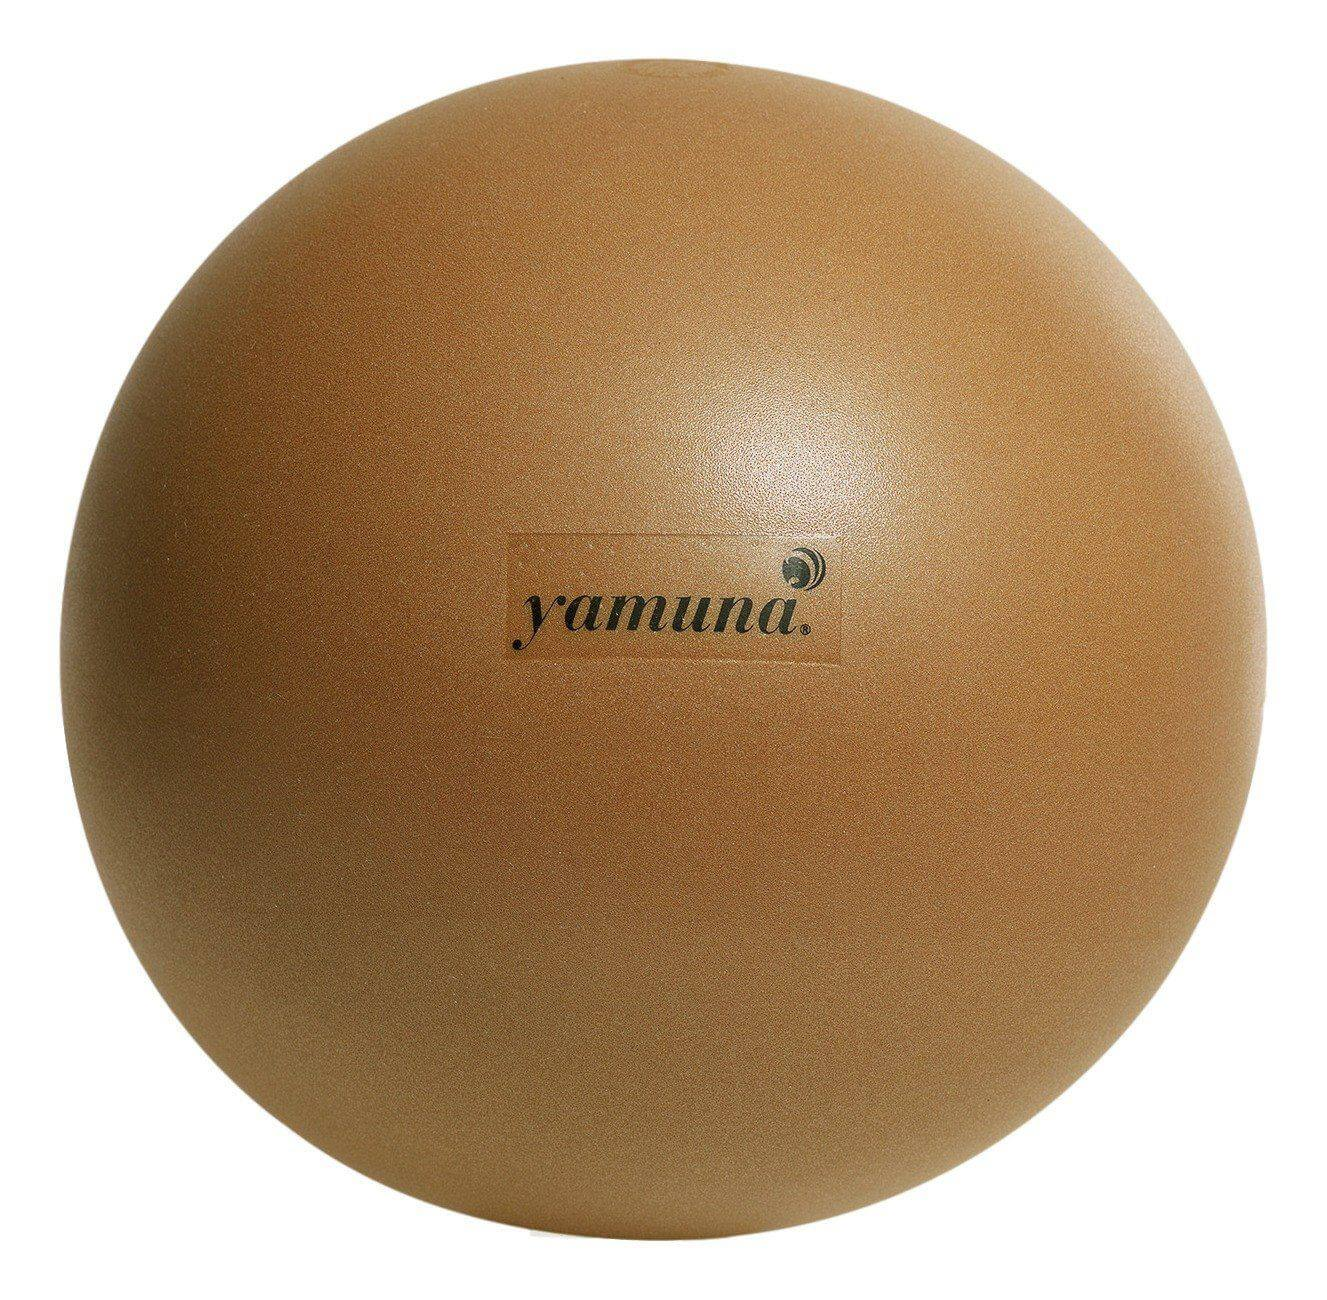 Yamuna Body Rolling Gold Ball